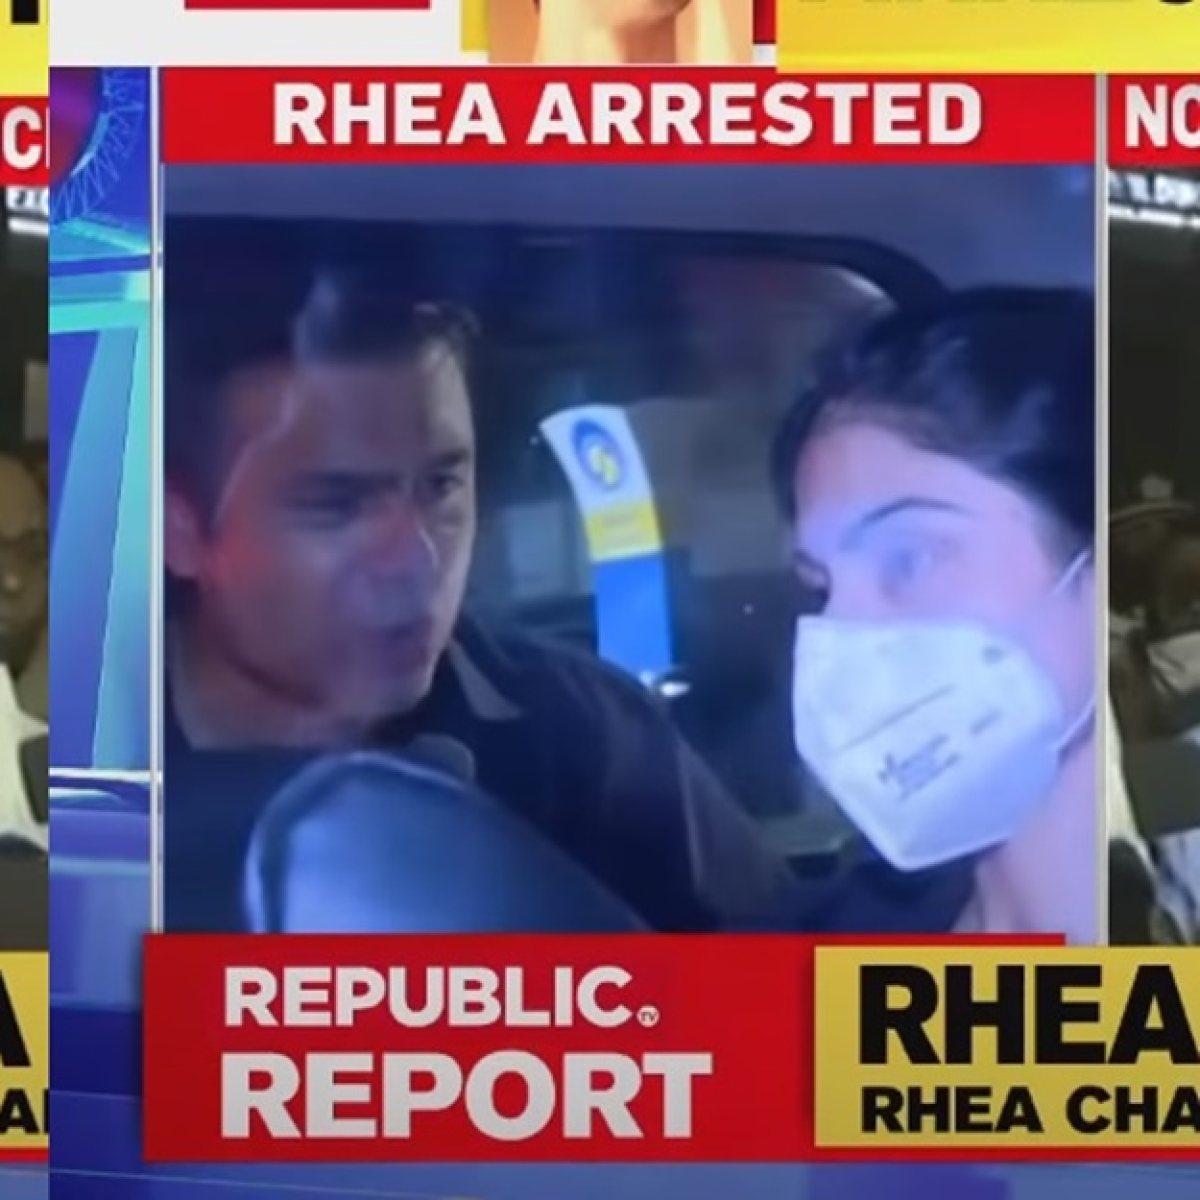 'Madam byte de do nahi toh seth maarega': Video of Republic TV reporter hounding Rhea post-arrest gets a hilarious twist